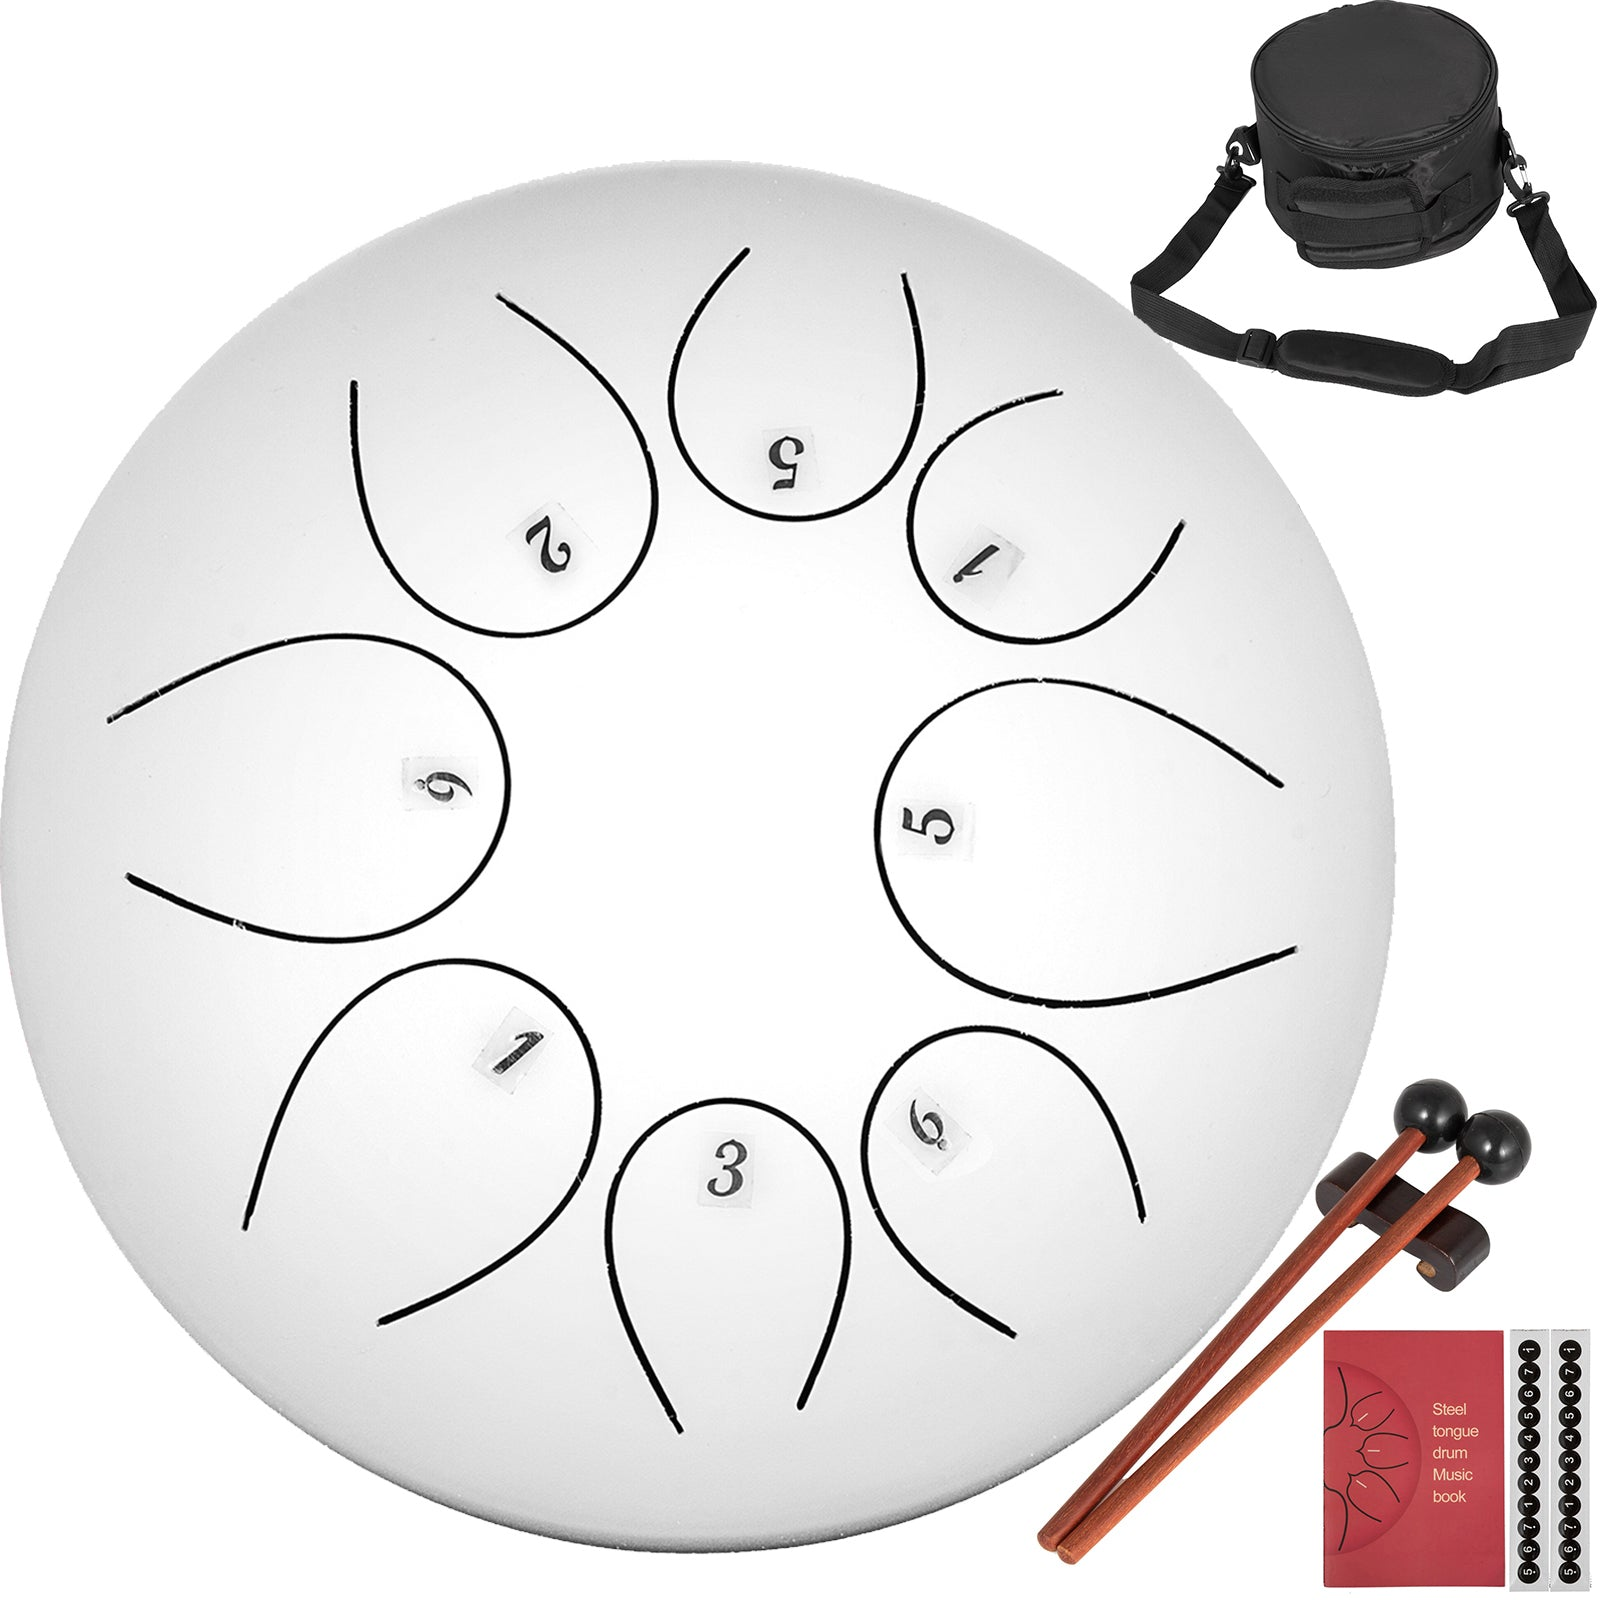 10'' Handpan Tambour à Languette 8 Notes C Majeur Instrument De Percussion Amis